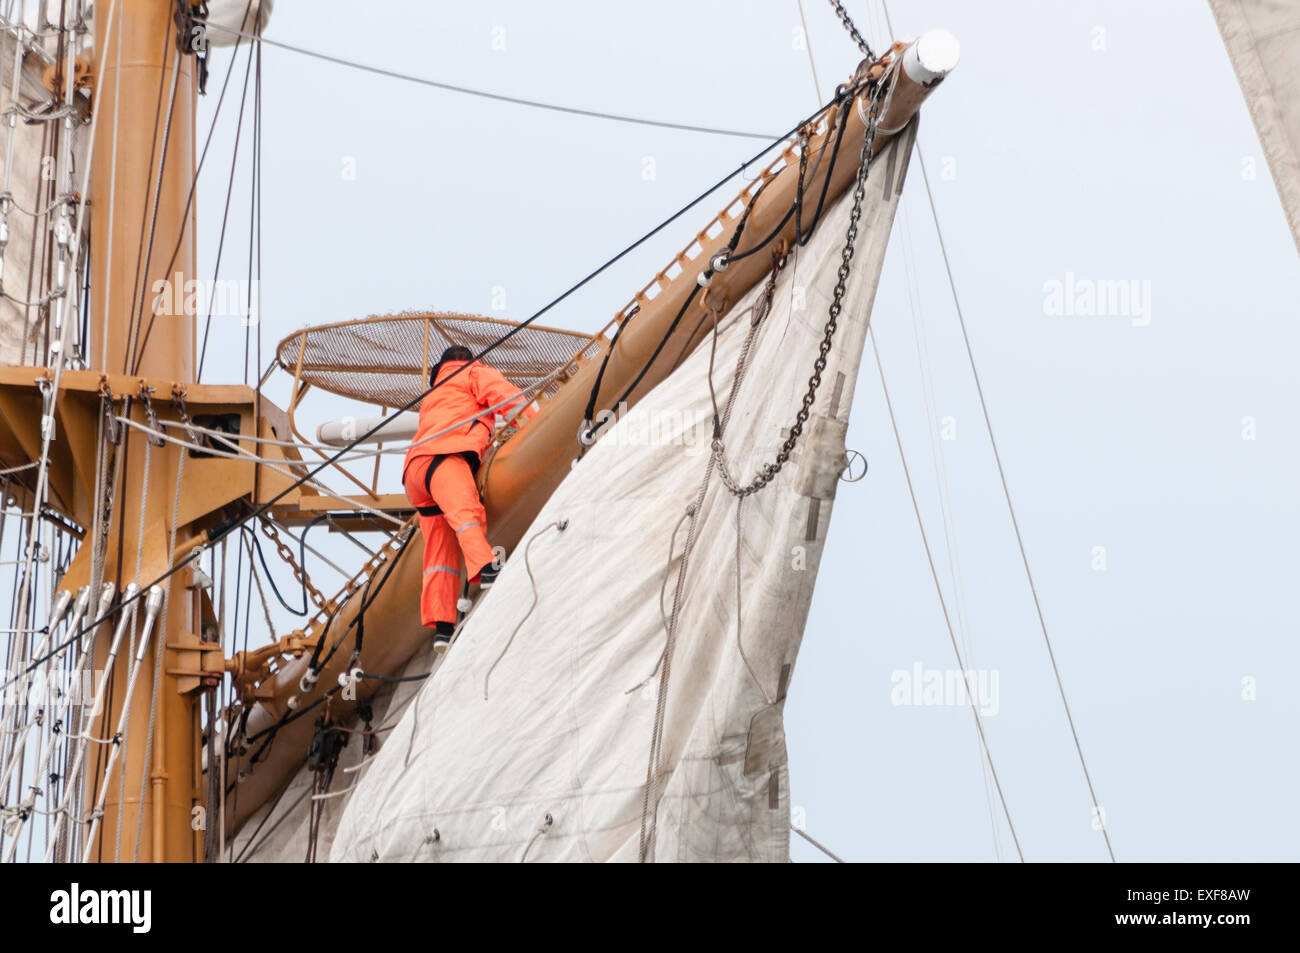 Sailors on board the Ecuadorian tall ship Guayas climb rigging to unfurl the sails. Stock Photo